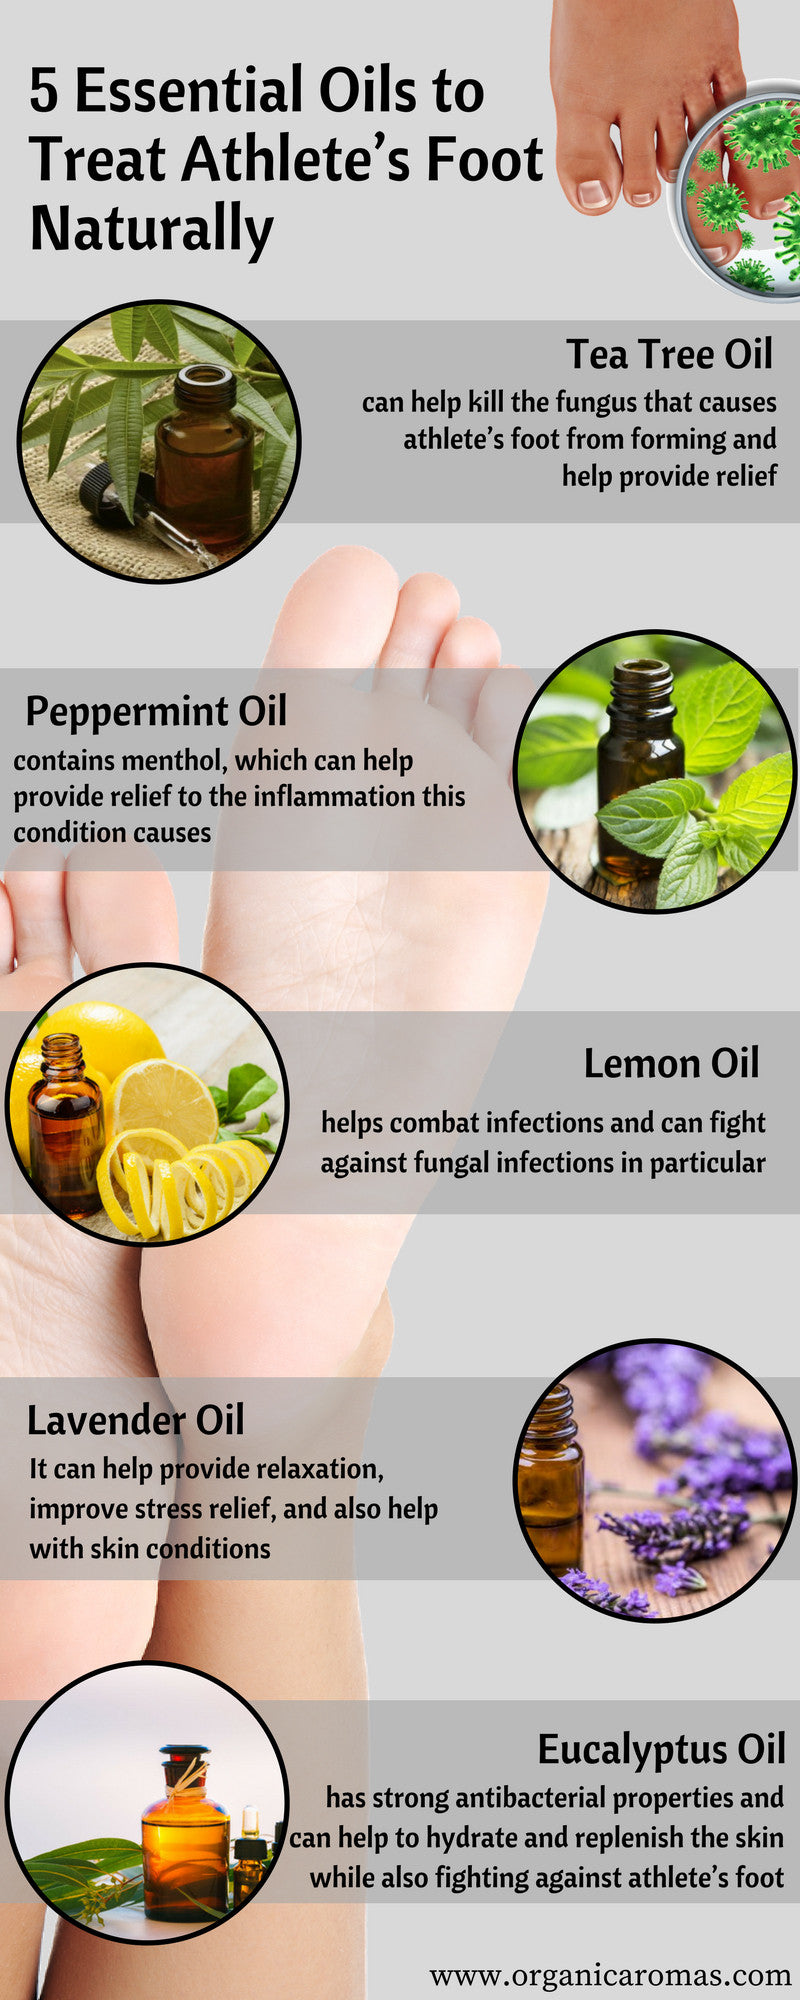 5 Essential Oils for Athletes Foot Info-graphic